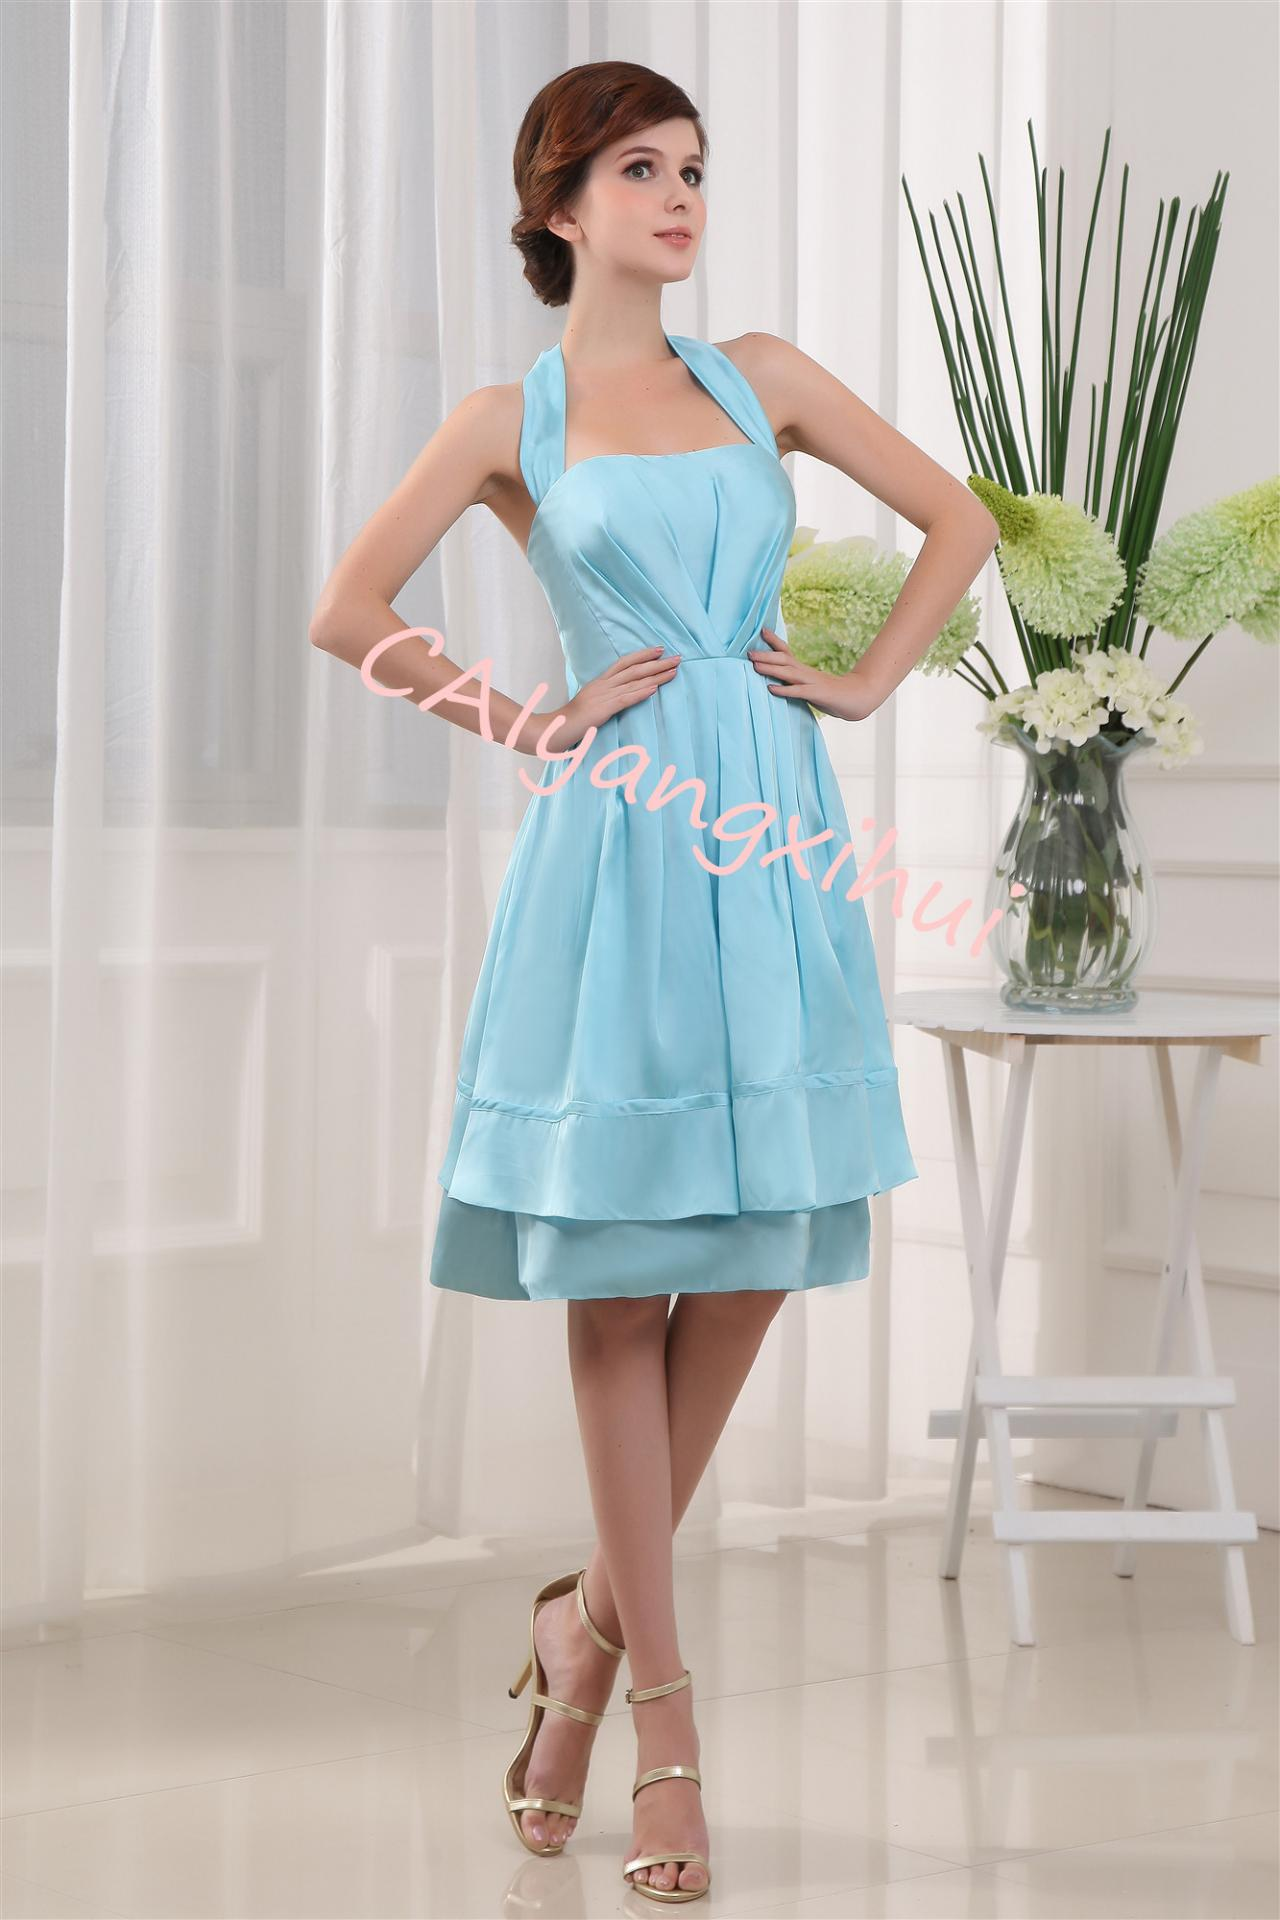 Bridesmaid Dress Short Prom Dresses Satin Evening Party Dress Bridesmaid Dresses